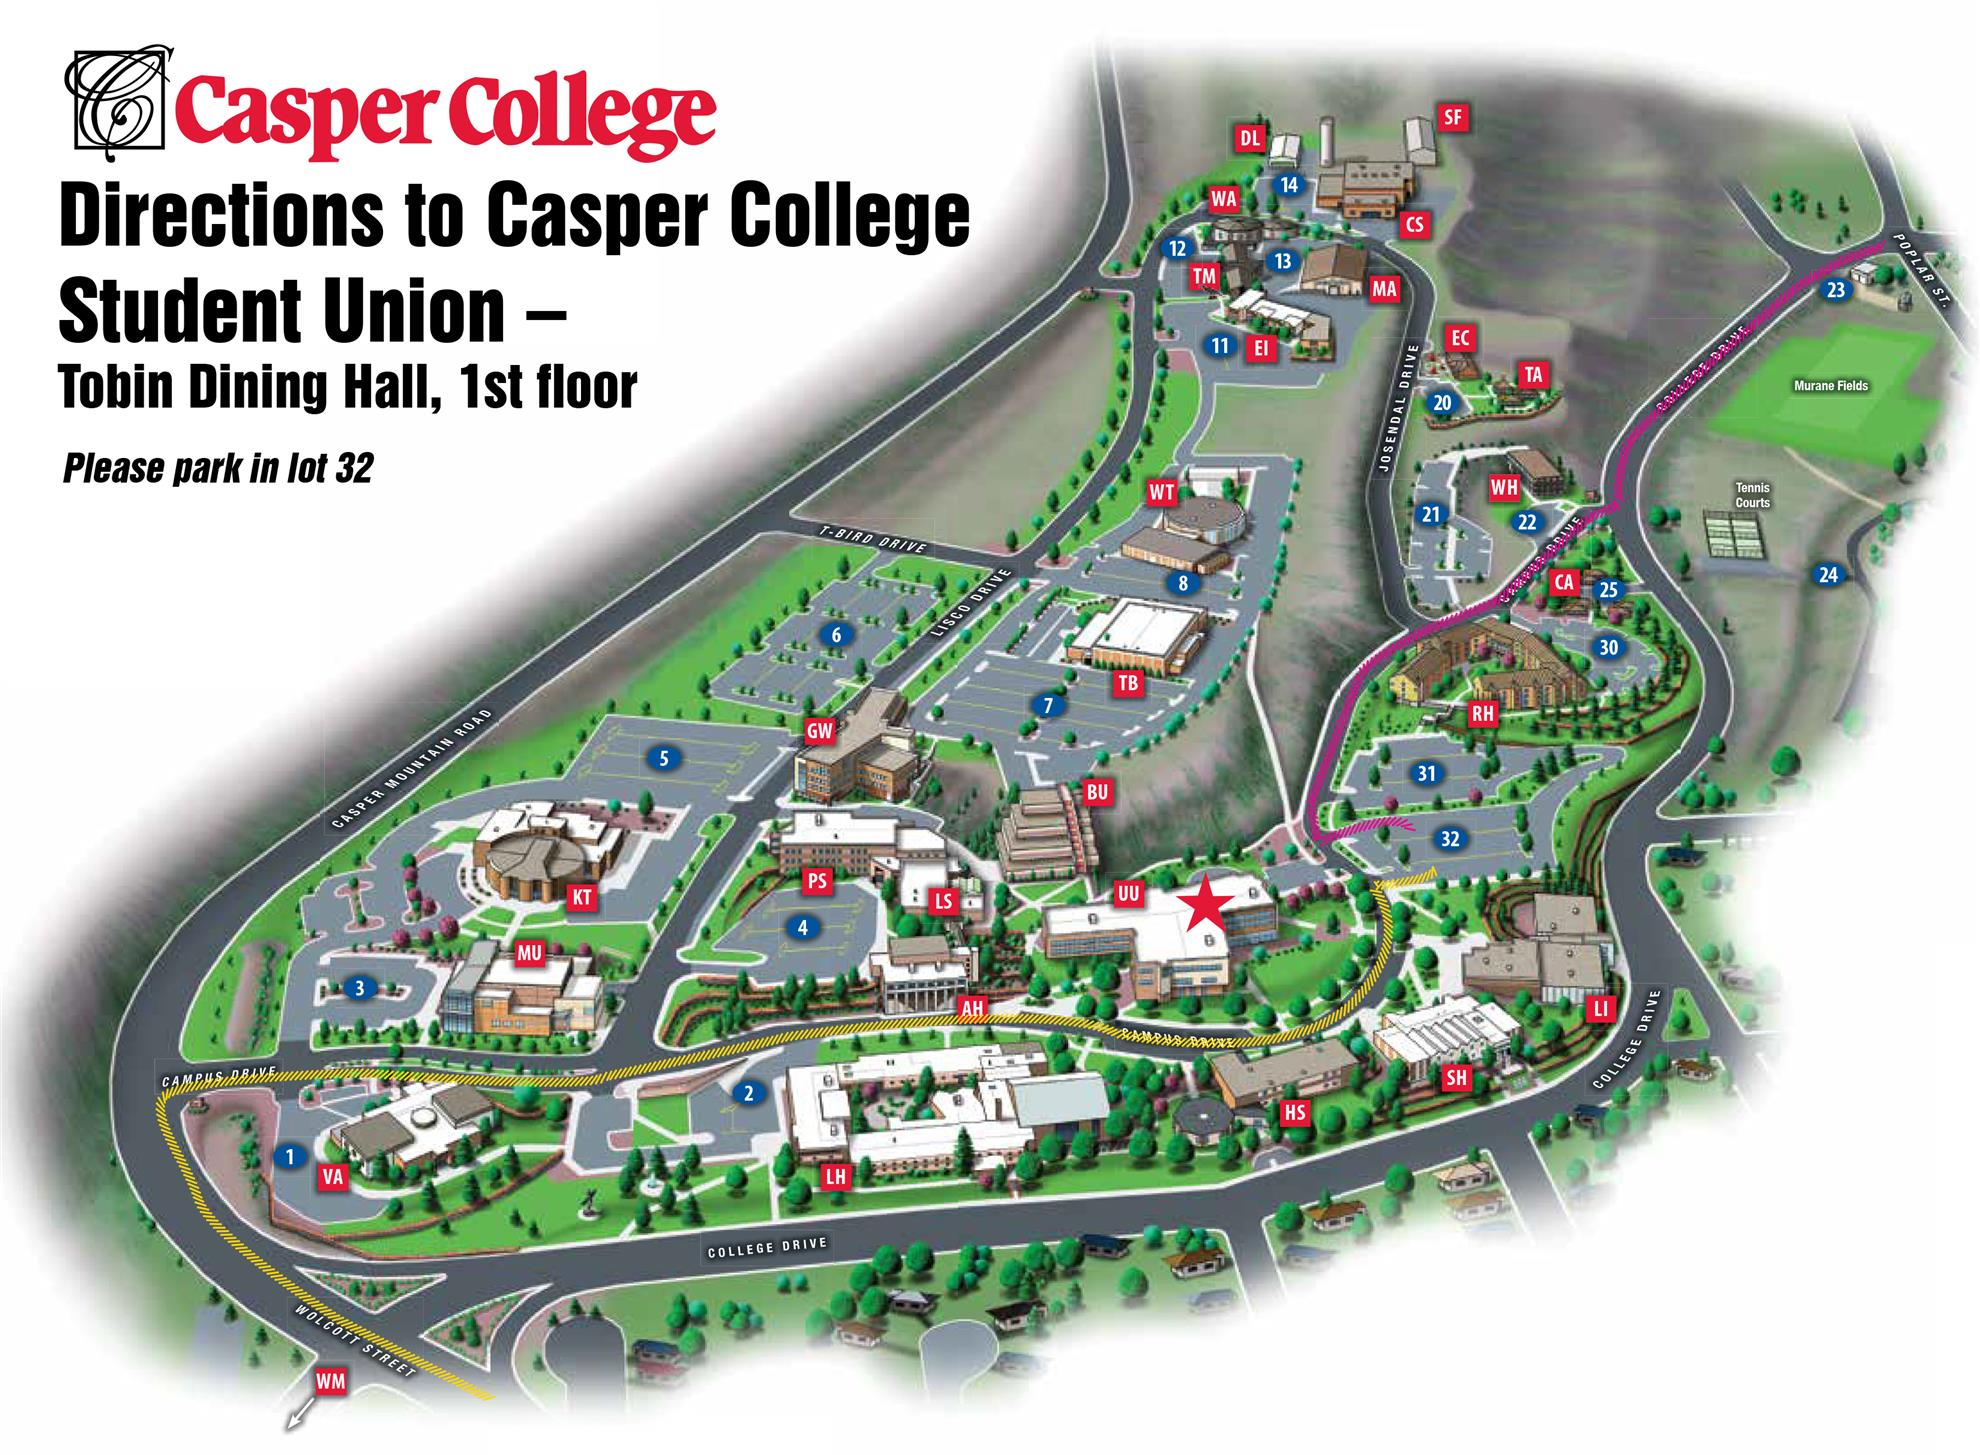 Casper College Map Rotary Rig May 18th, 2015 (May 18, 2015) Casper College Map